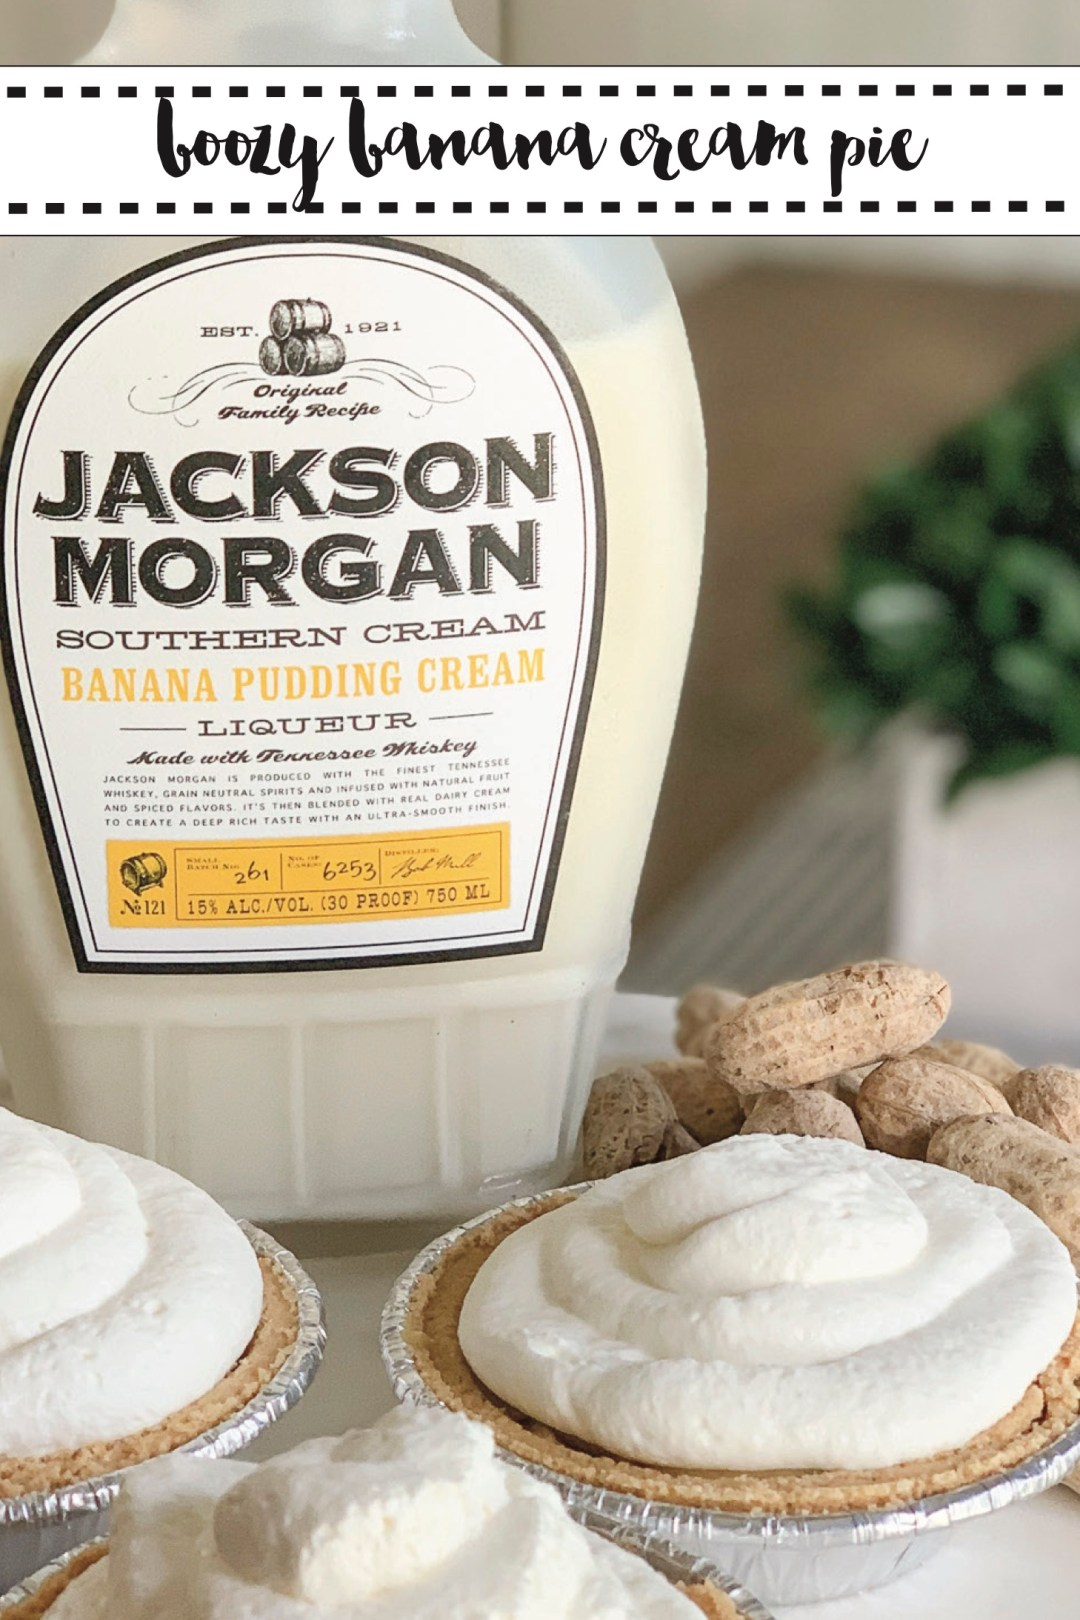 Jackson Morgan Cream Mini Cream Pies